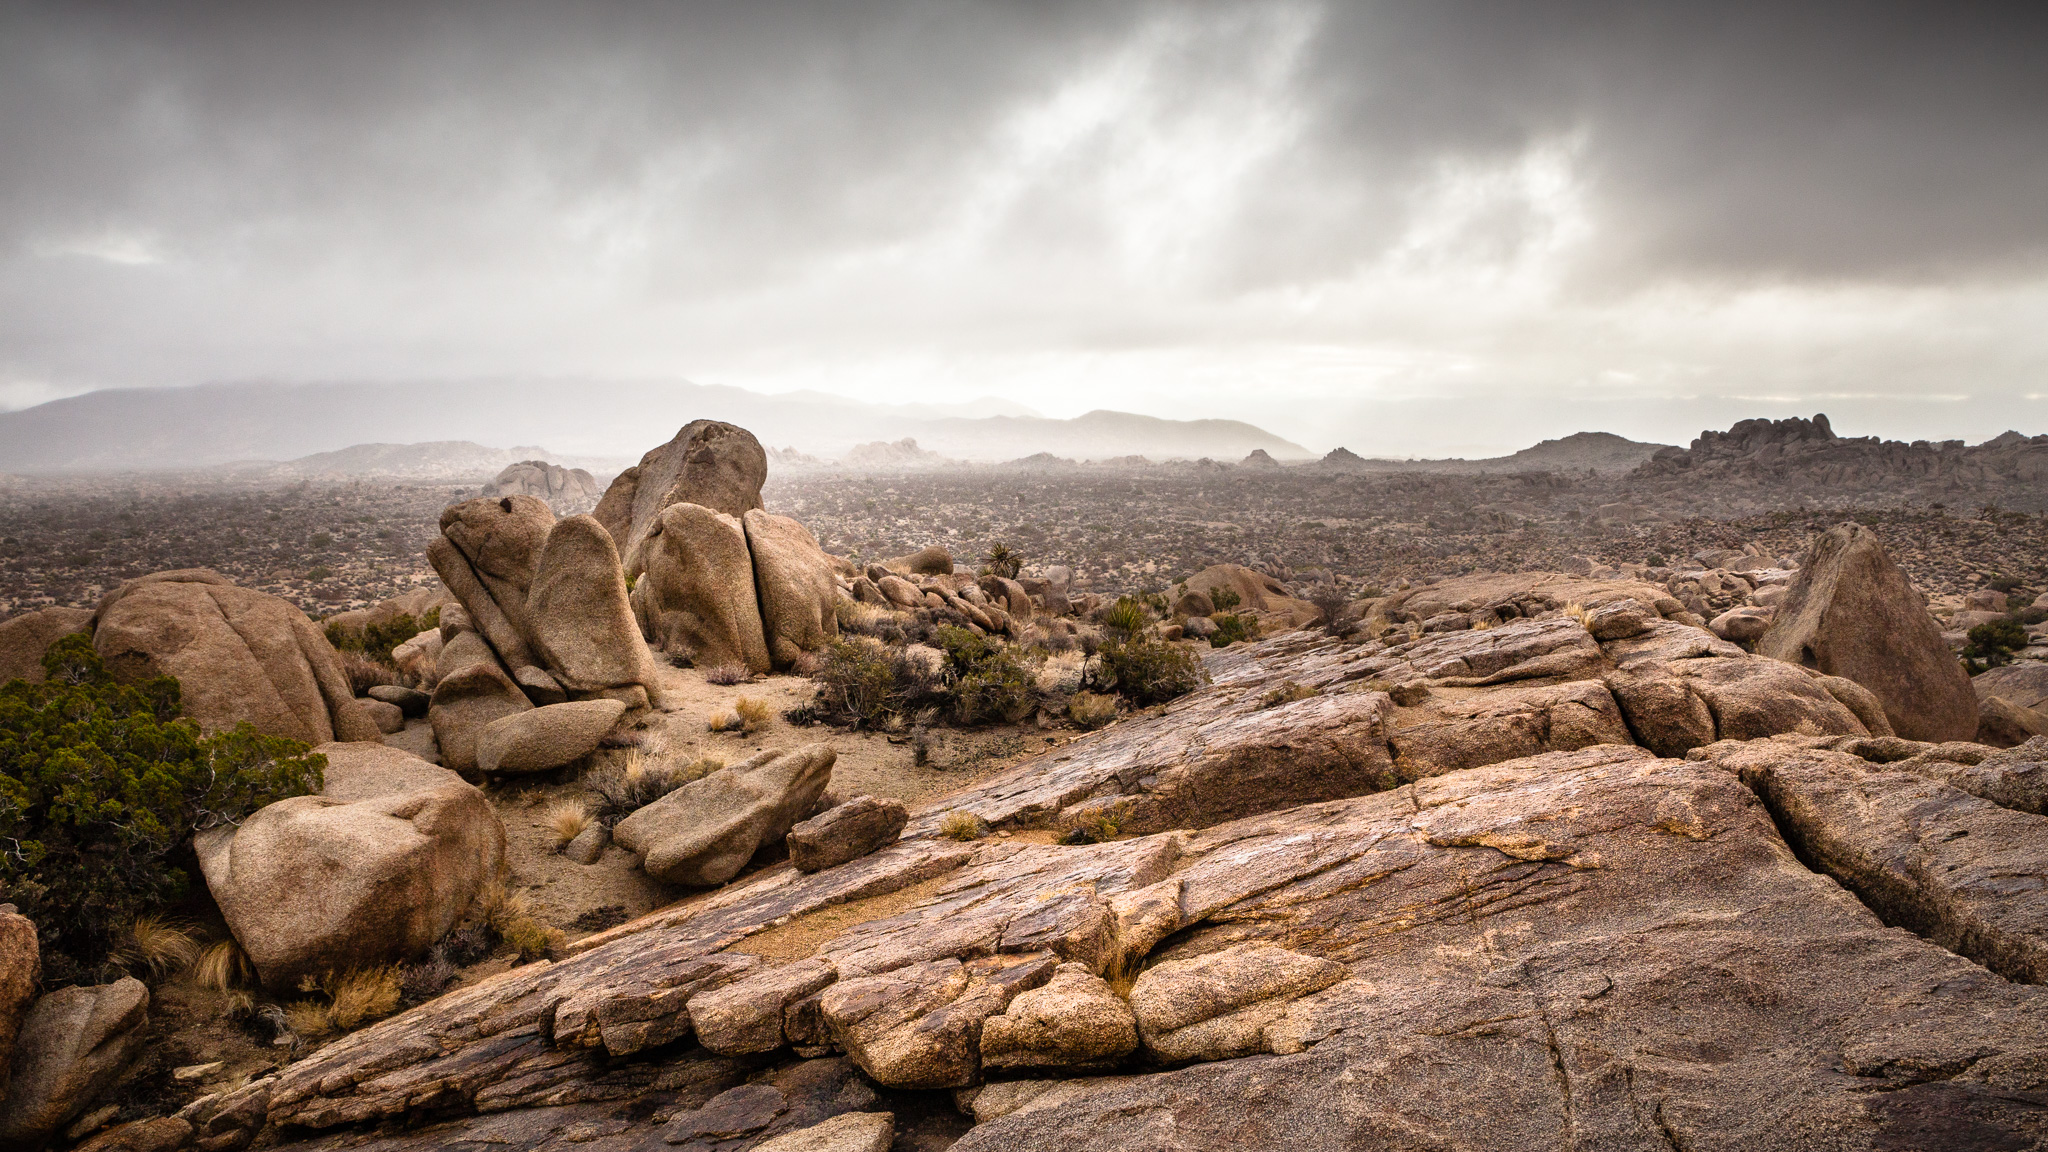 Stormy Weather In A Rocky Joshua Tree National Park Landscape